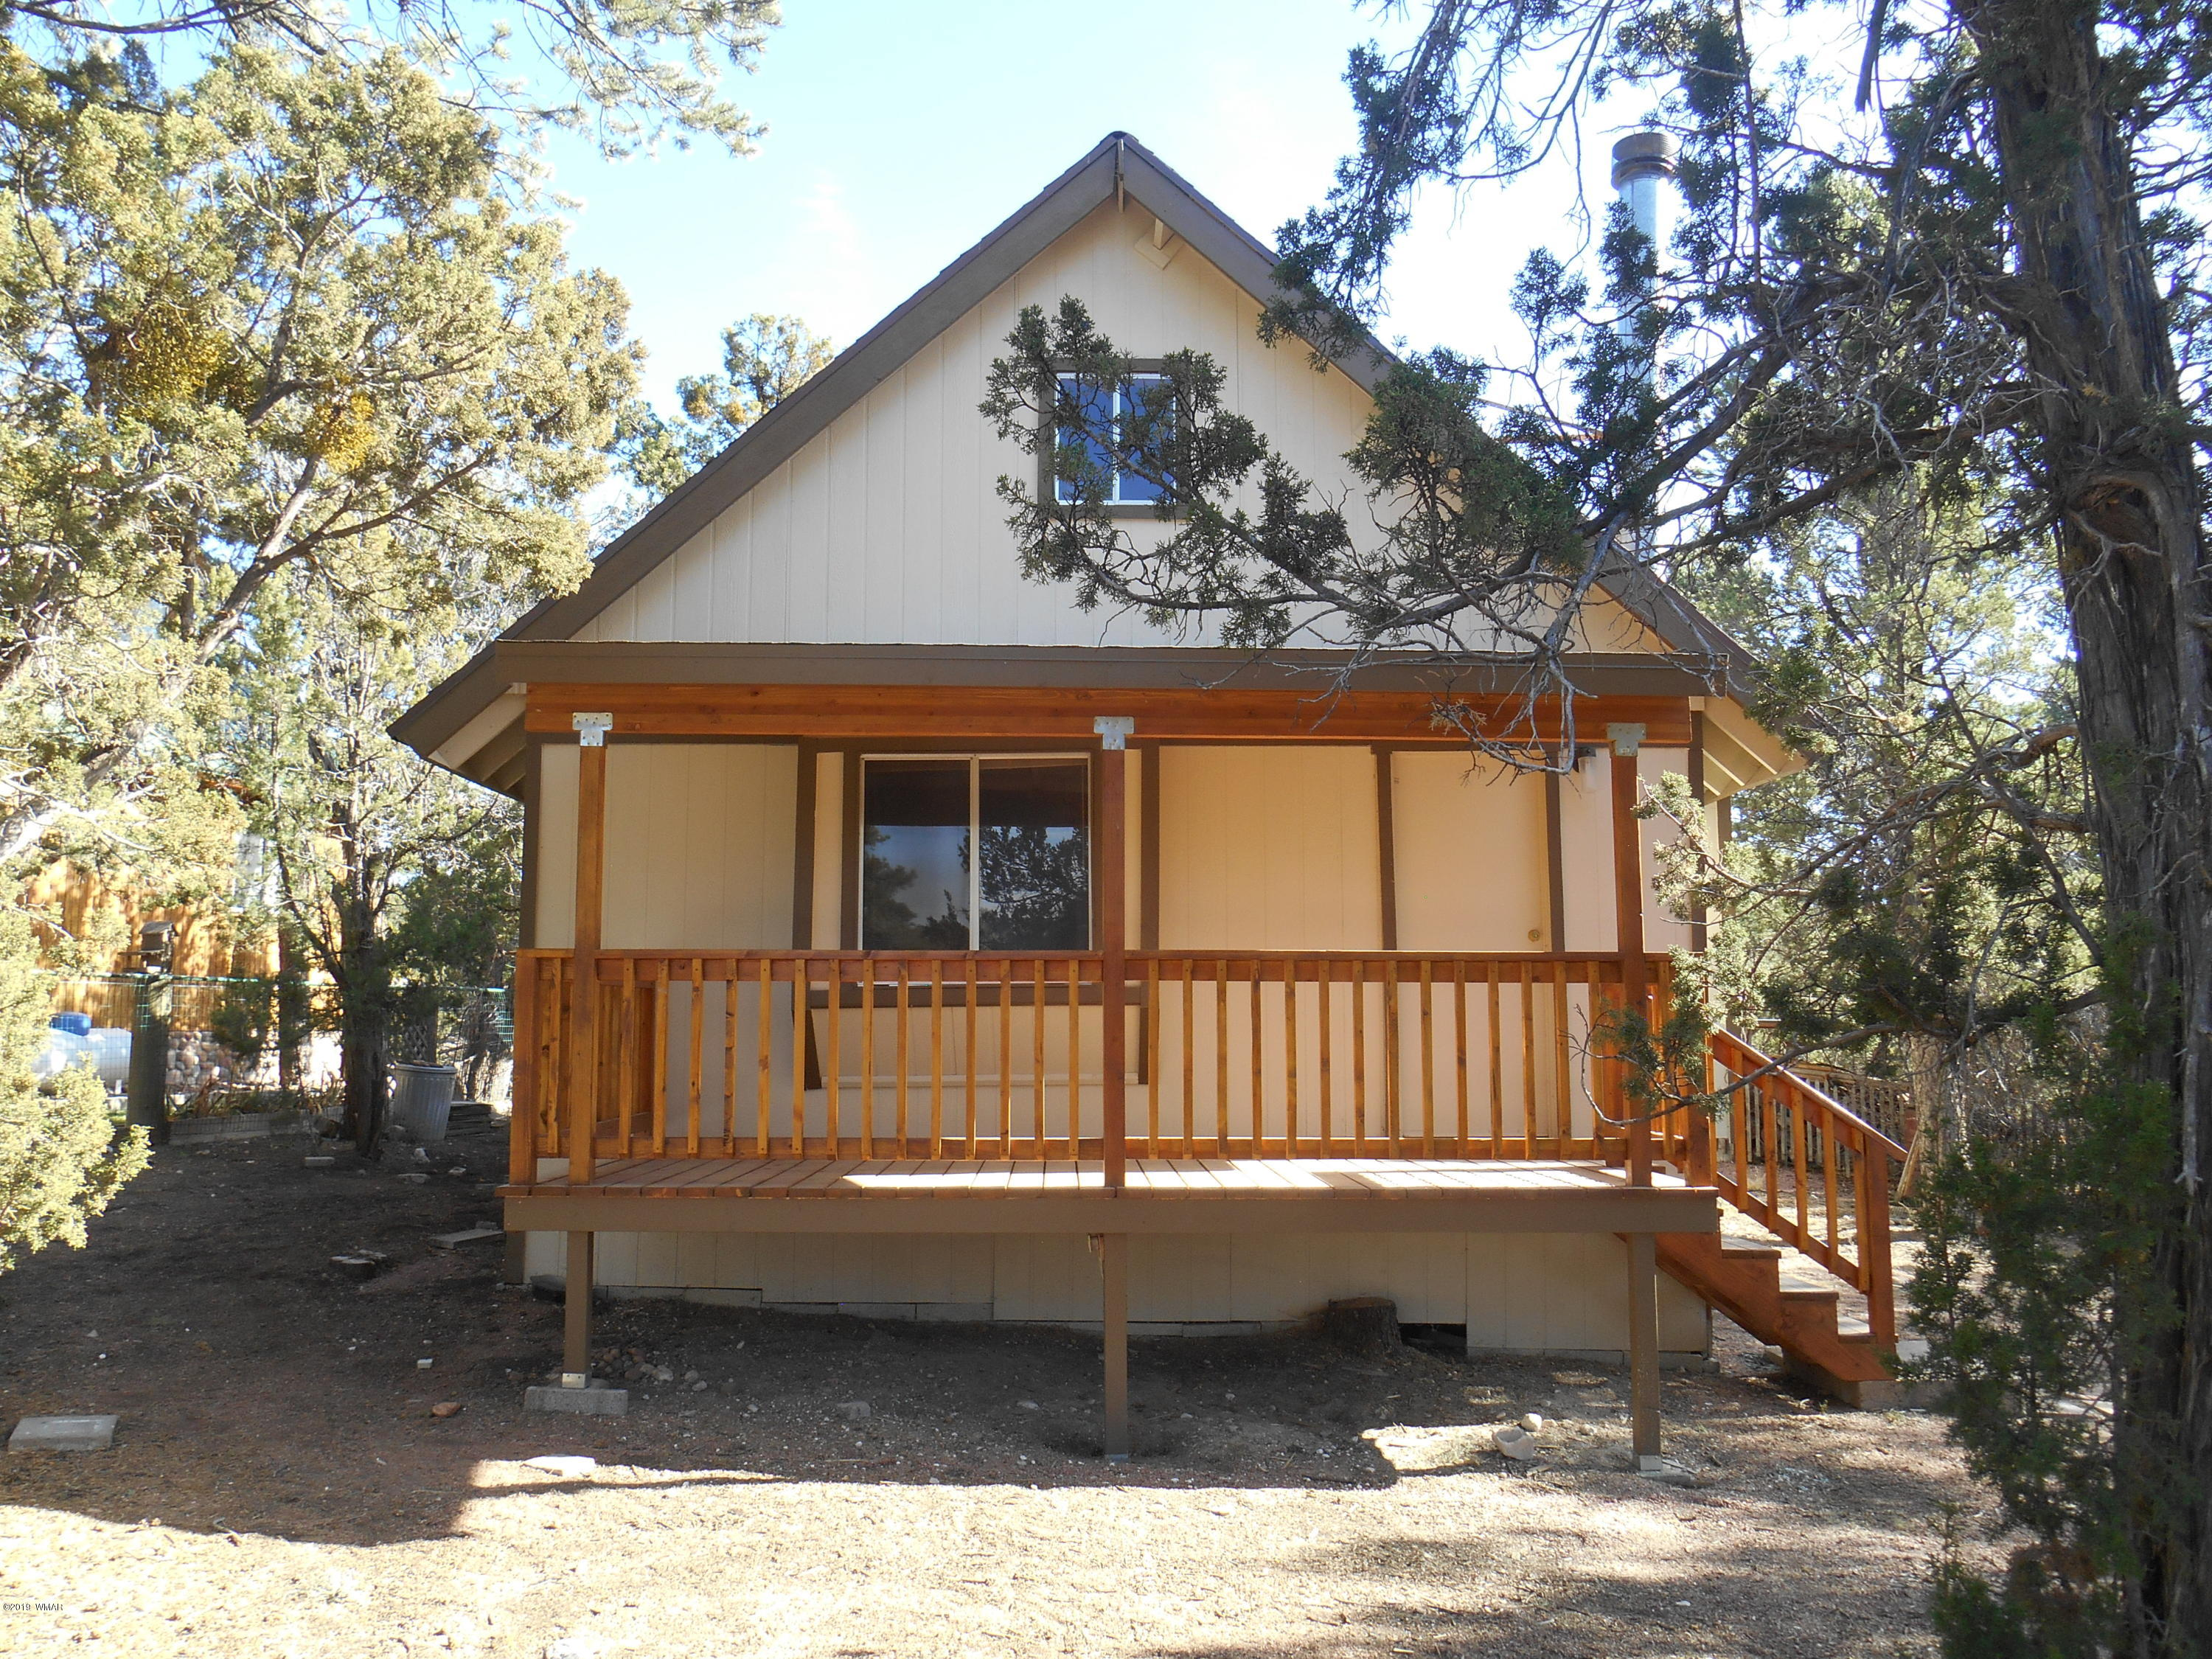 This adorable recently remodeled and updated cabin has 640 sq ft on the main level and approximately another 216 sq ft in the loft. 2 beds and the bath downand plenty of space for overflow in the loft. The interior features new kitchen cabinets, counter-tops, flooring throughout, bathroom sink, toilet, re stained ceilings. The exterior has been freshly painted and a new covered deck. County maintained roads leading you to the quiet pace of the White Mountain life here on 3335 Little Pine Dr. Ready for you to light up that fireplace and sip on some hot cocoa. Ready - Set - Move In!